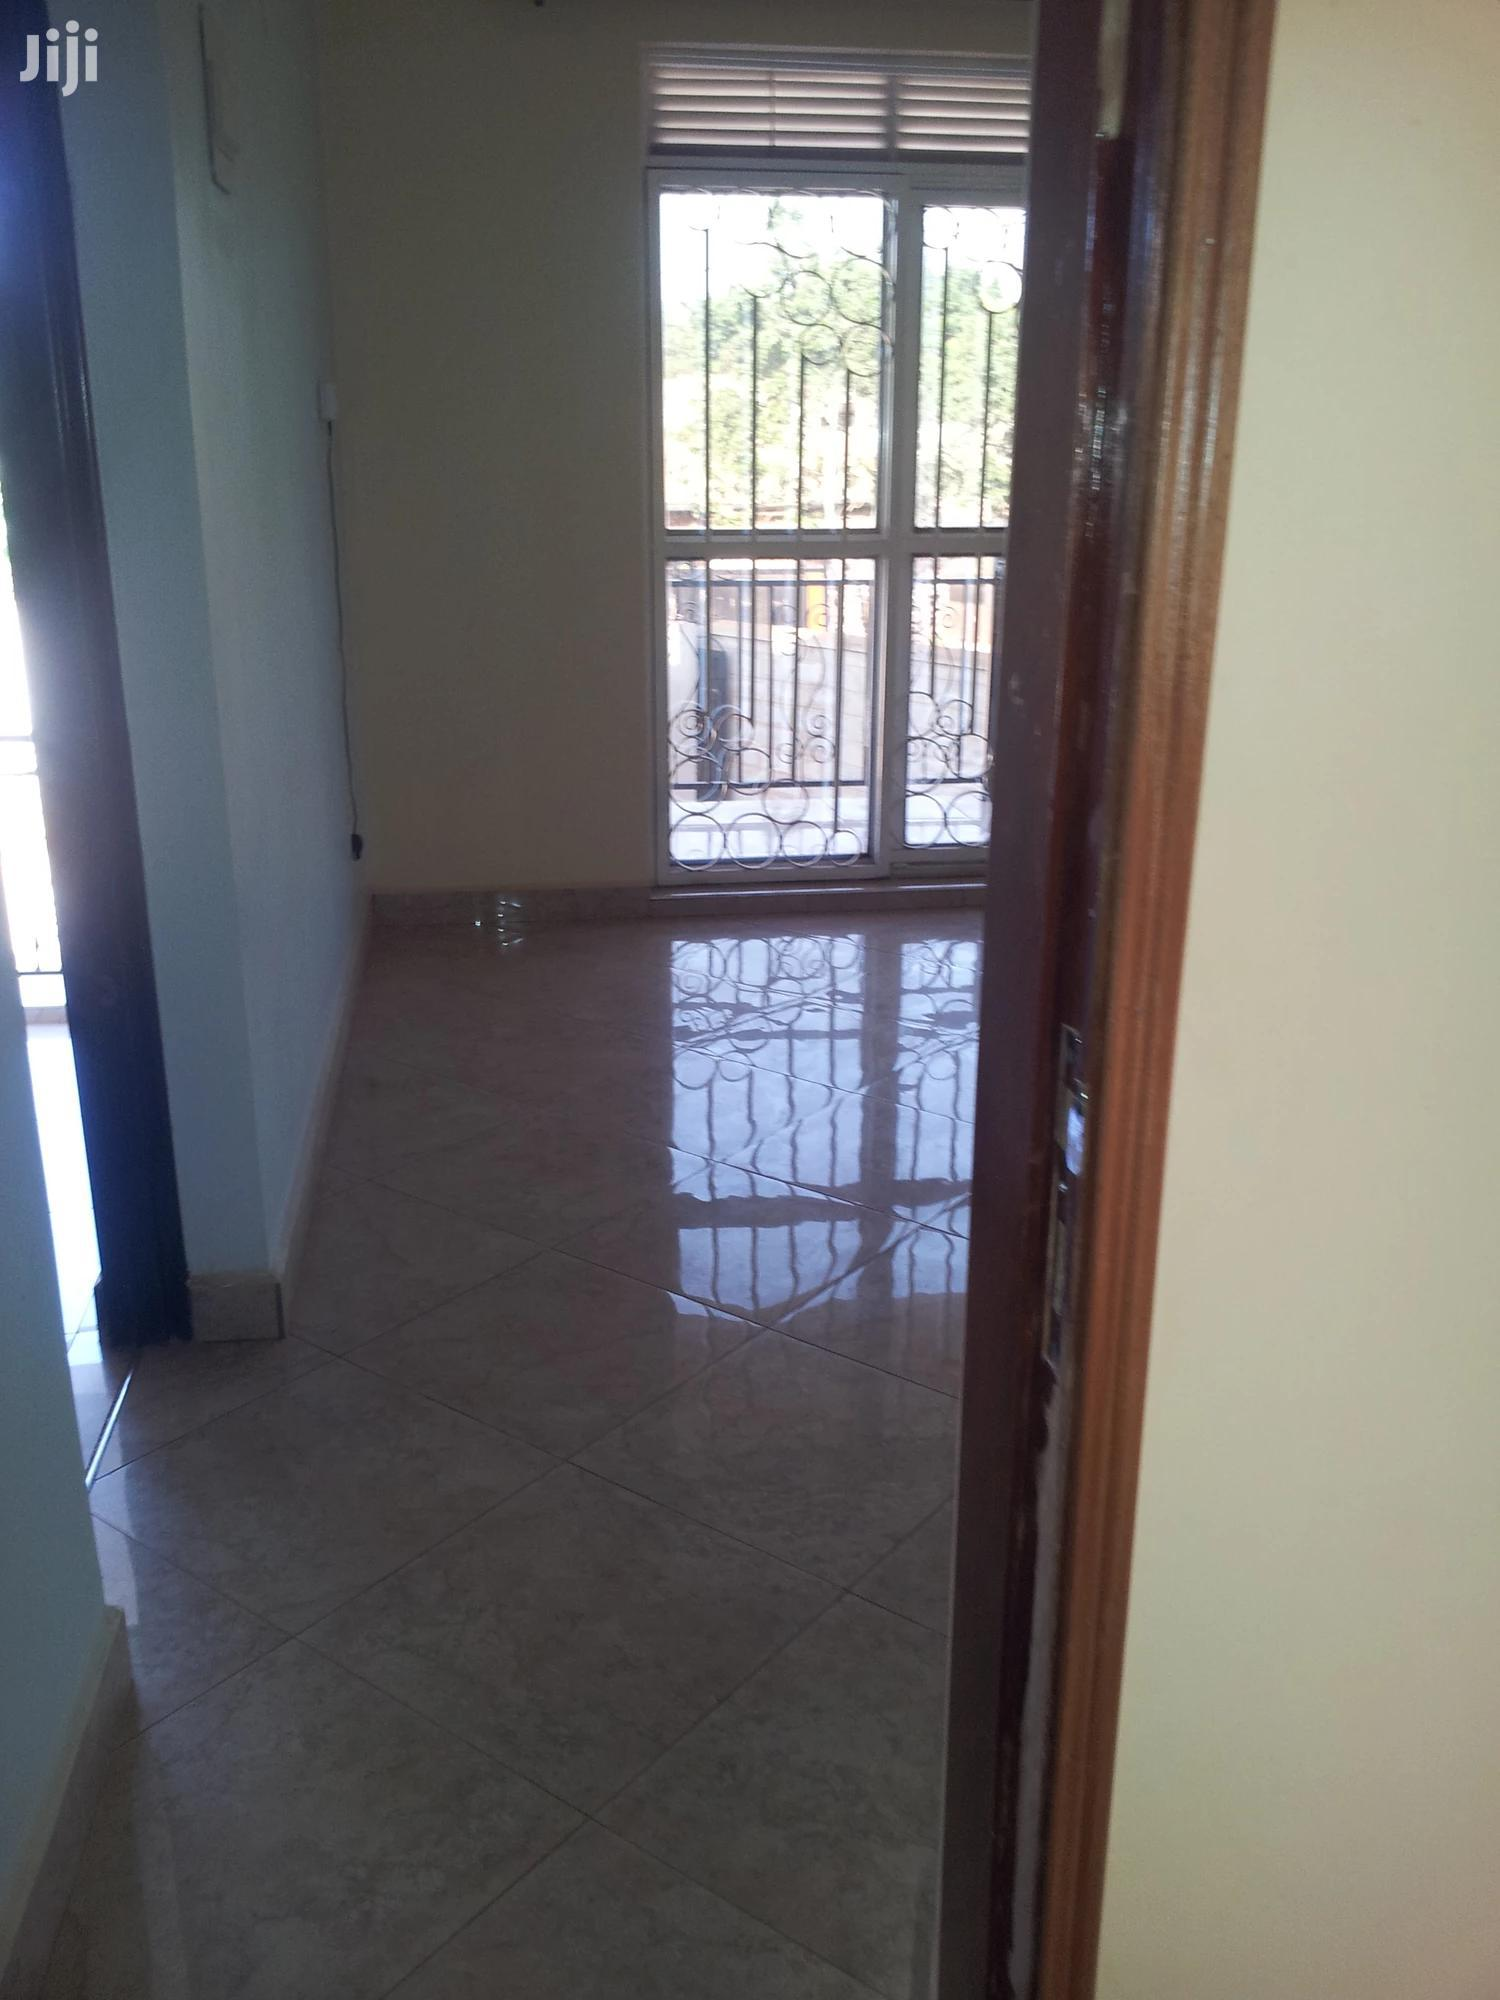 Two Room Apartment In Kyanja For Rent | Houses & Apartments For Rent for sale in Kampala, Central Region, Uganda